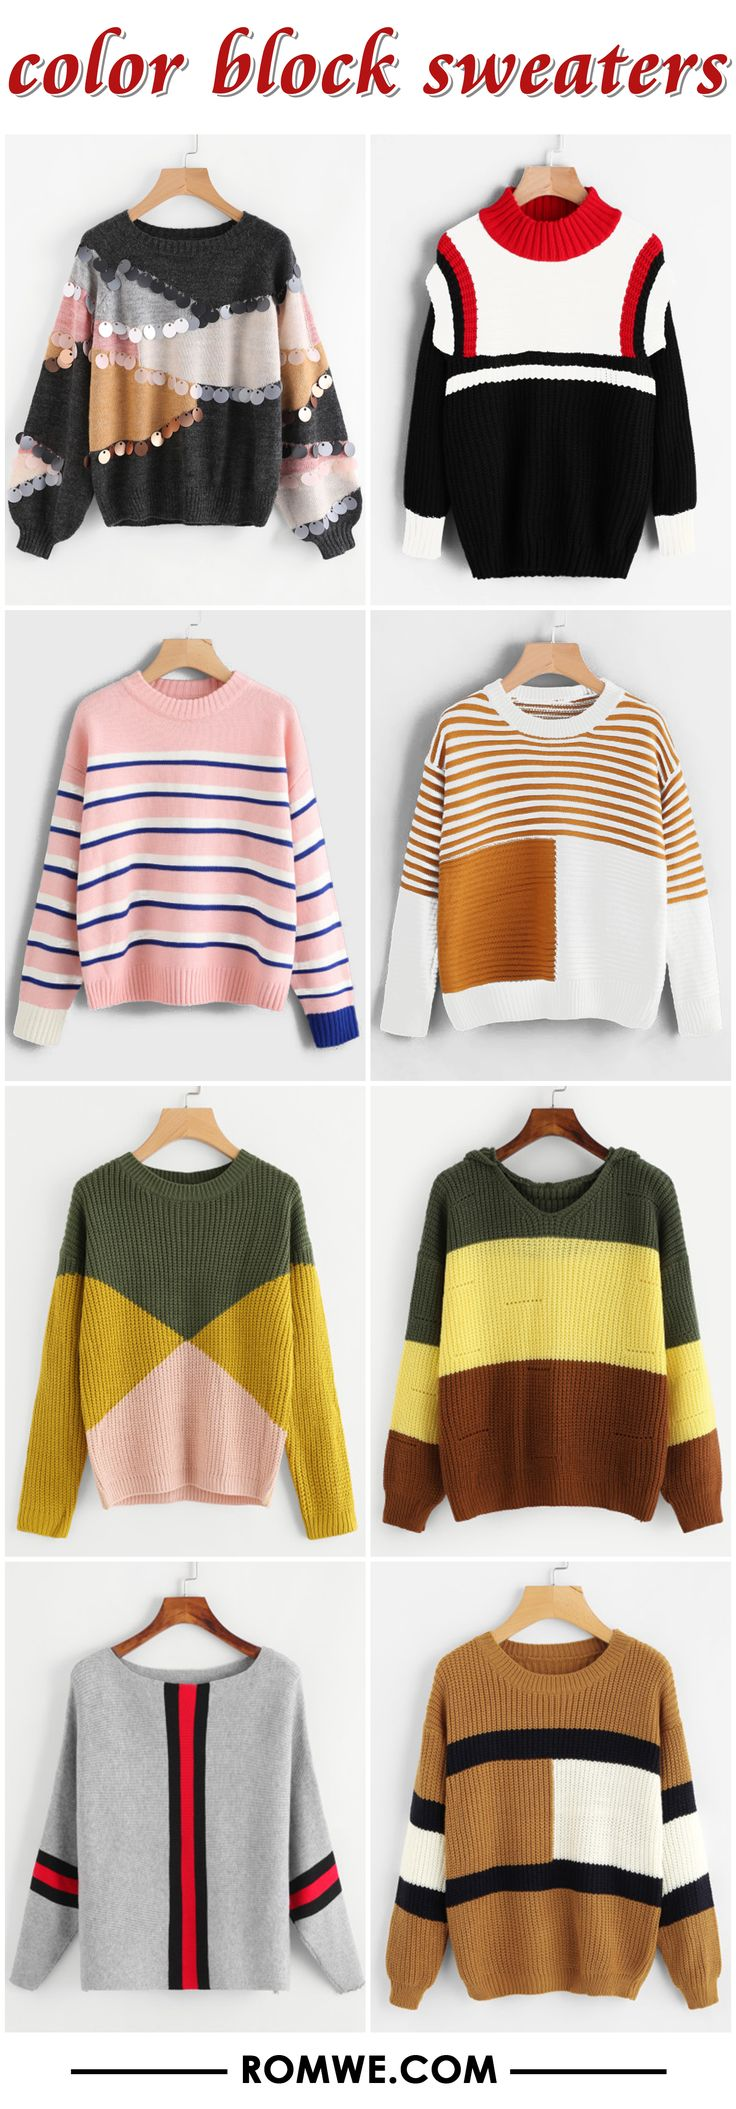 color block sweaters from romwe.com